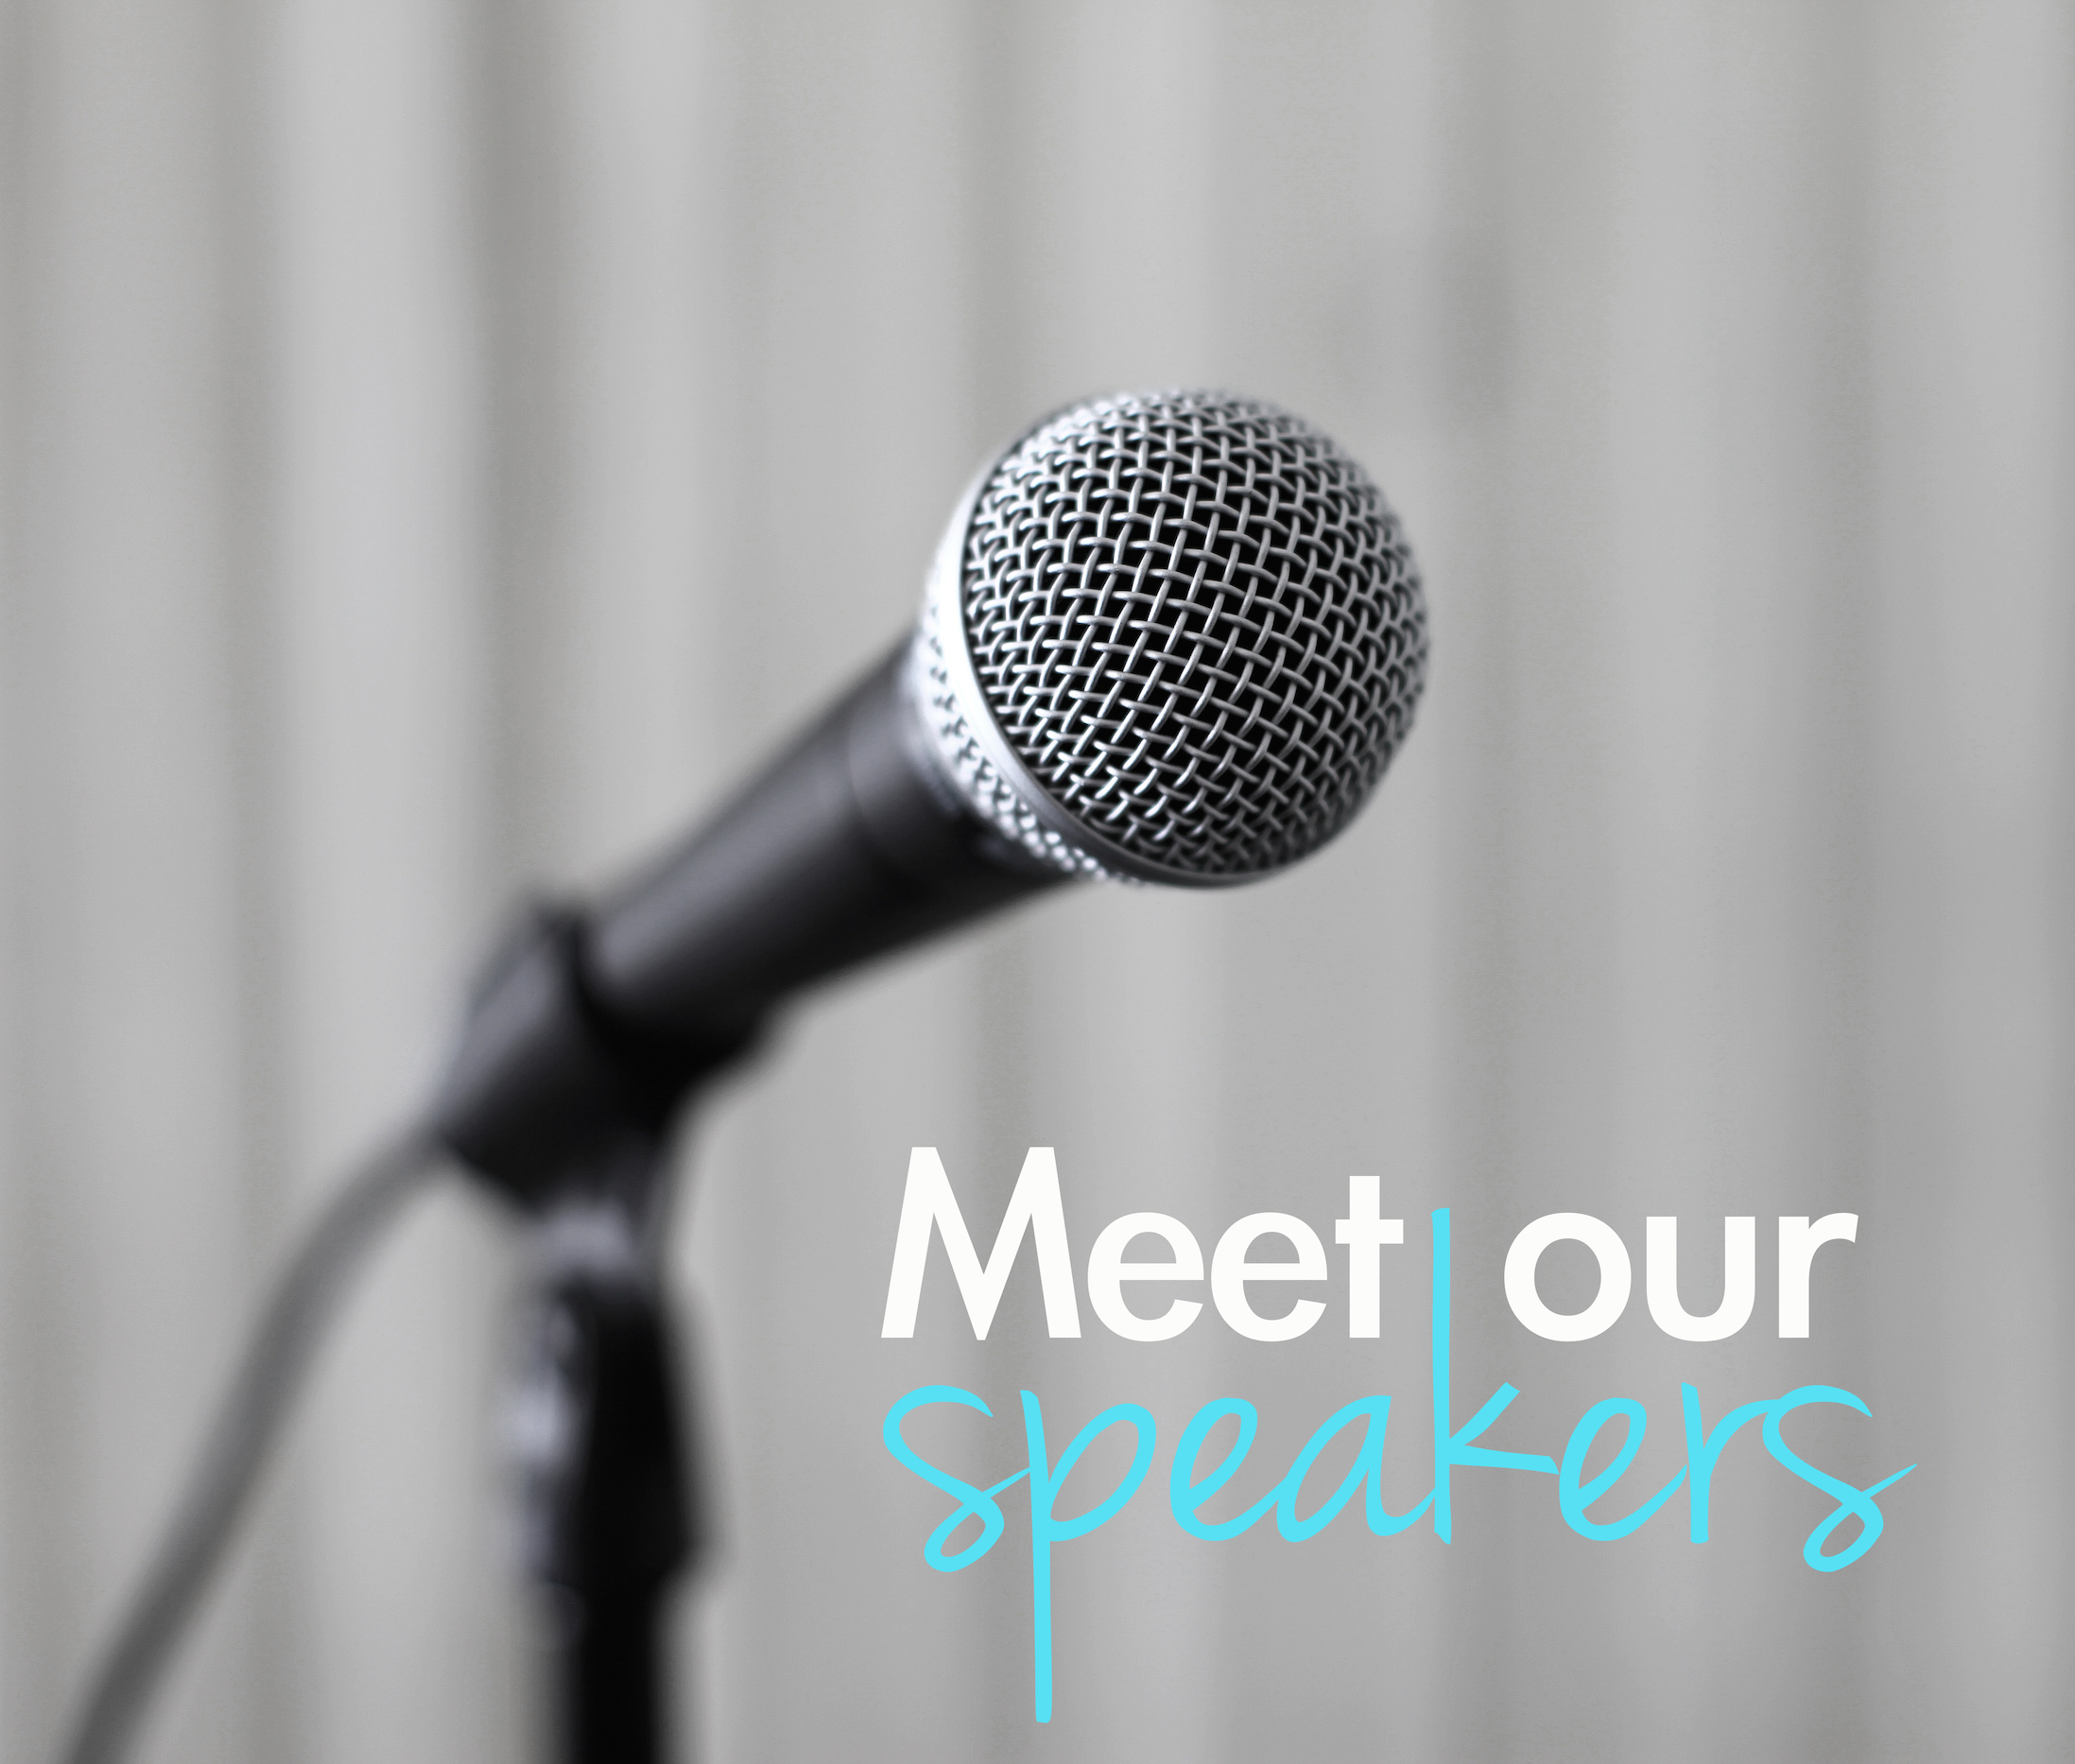 Image result for meet our speakers